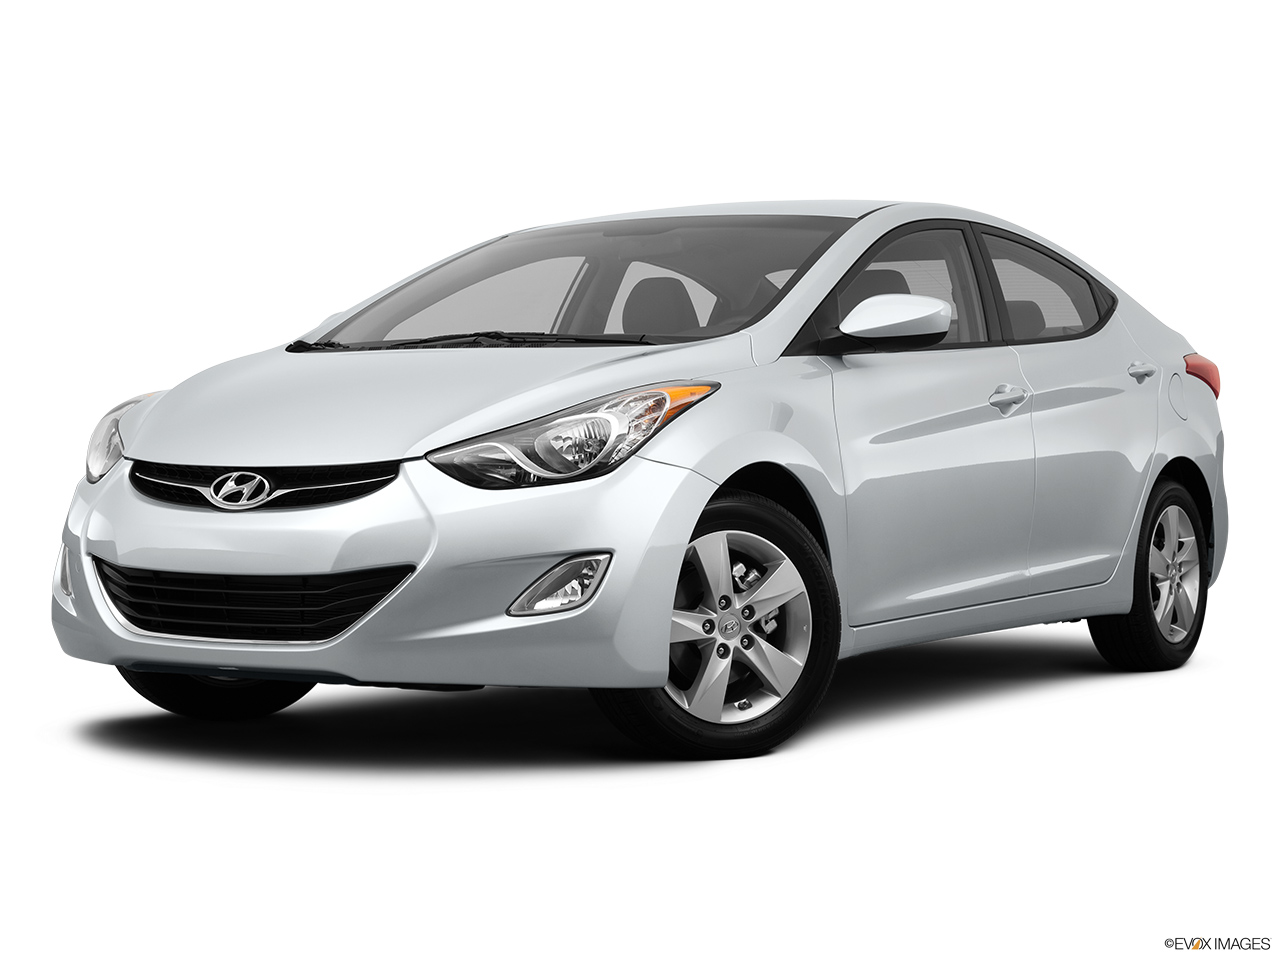 2012 Hyundai Elantra Vs Ford Focus Which One Should I Buy Fuel Filter